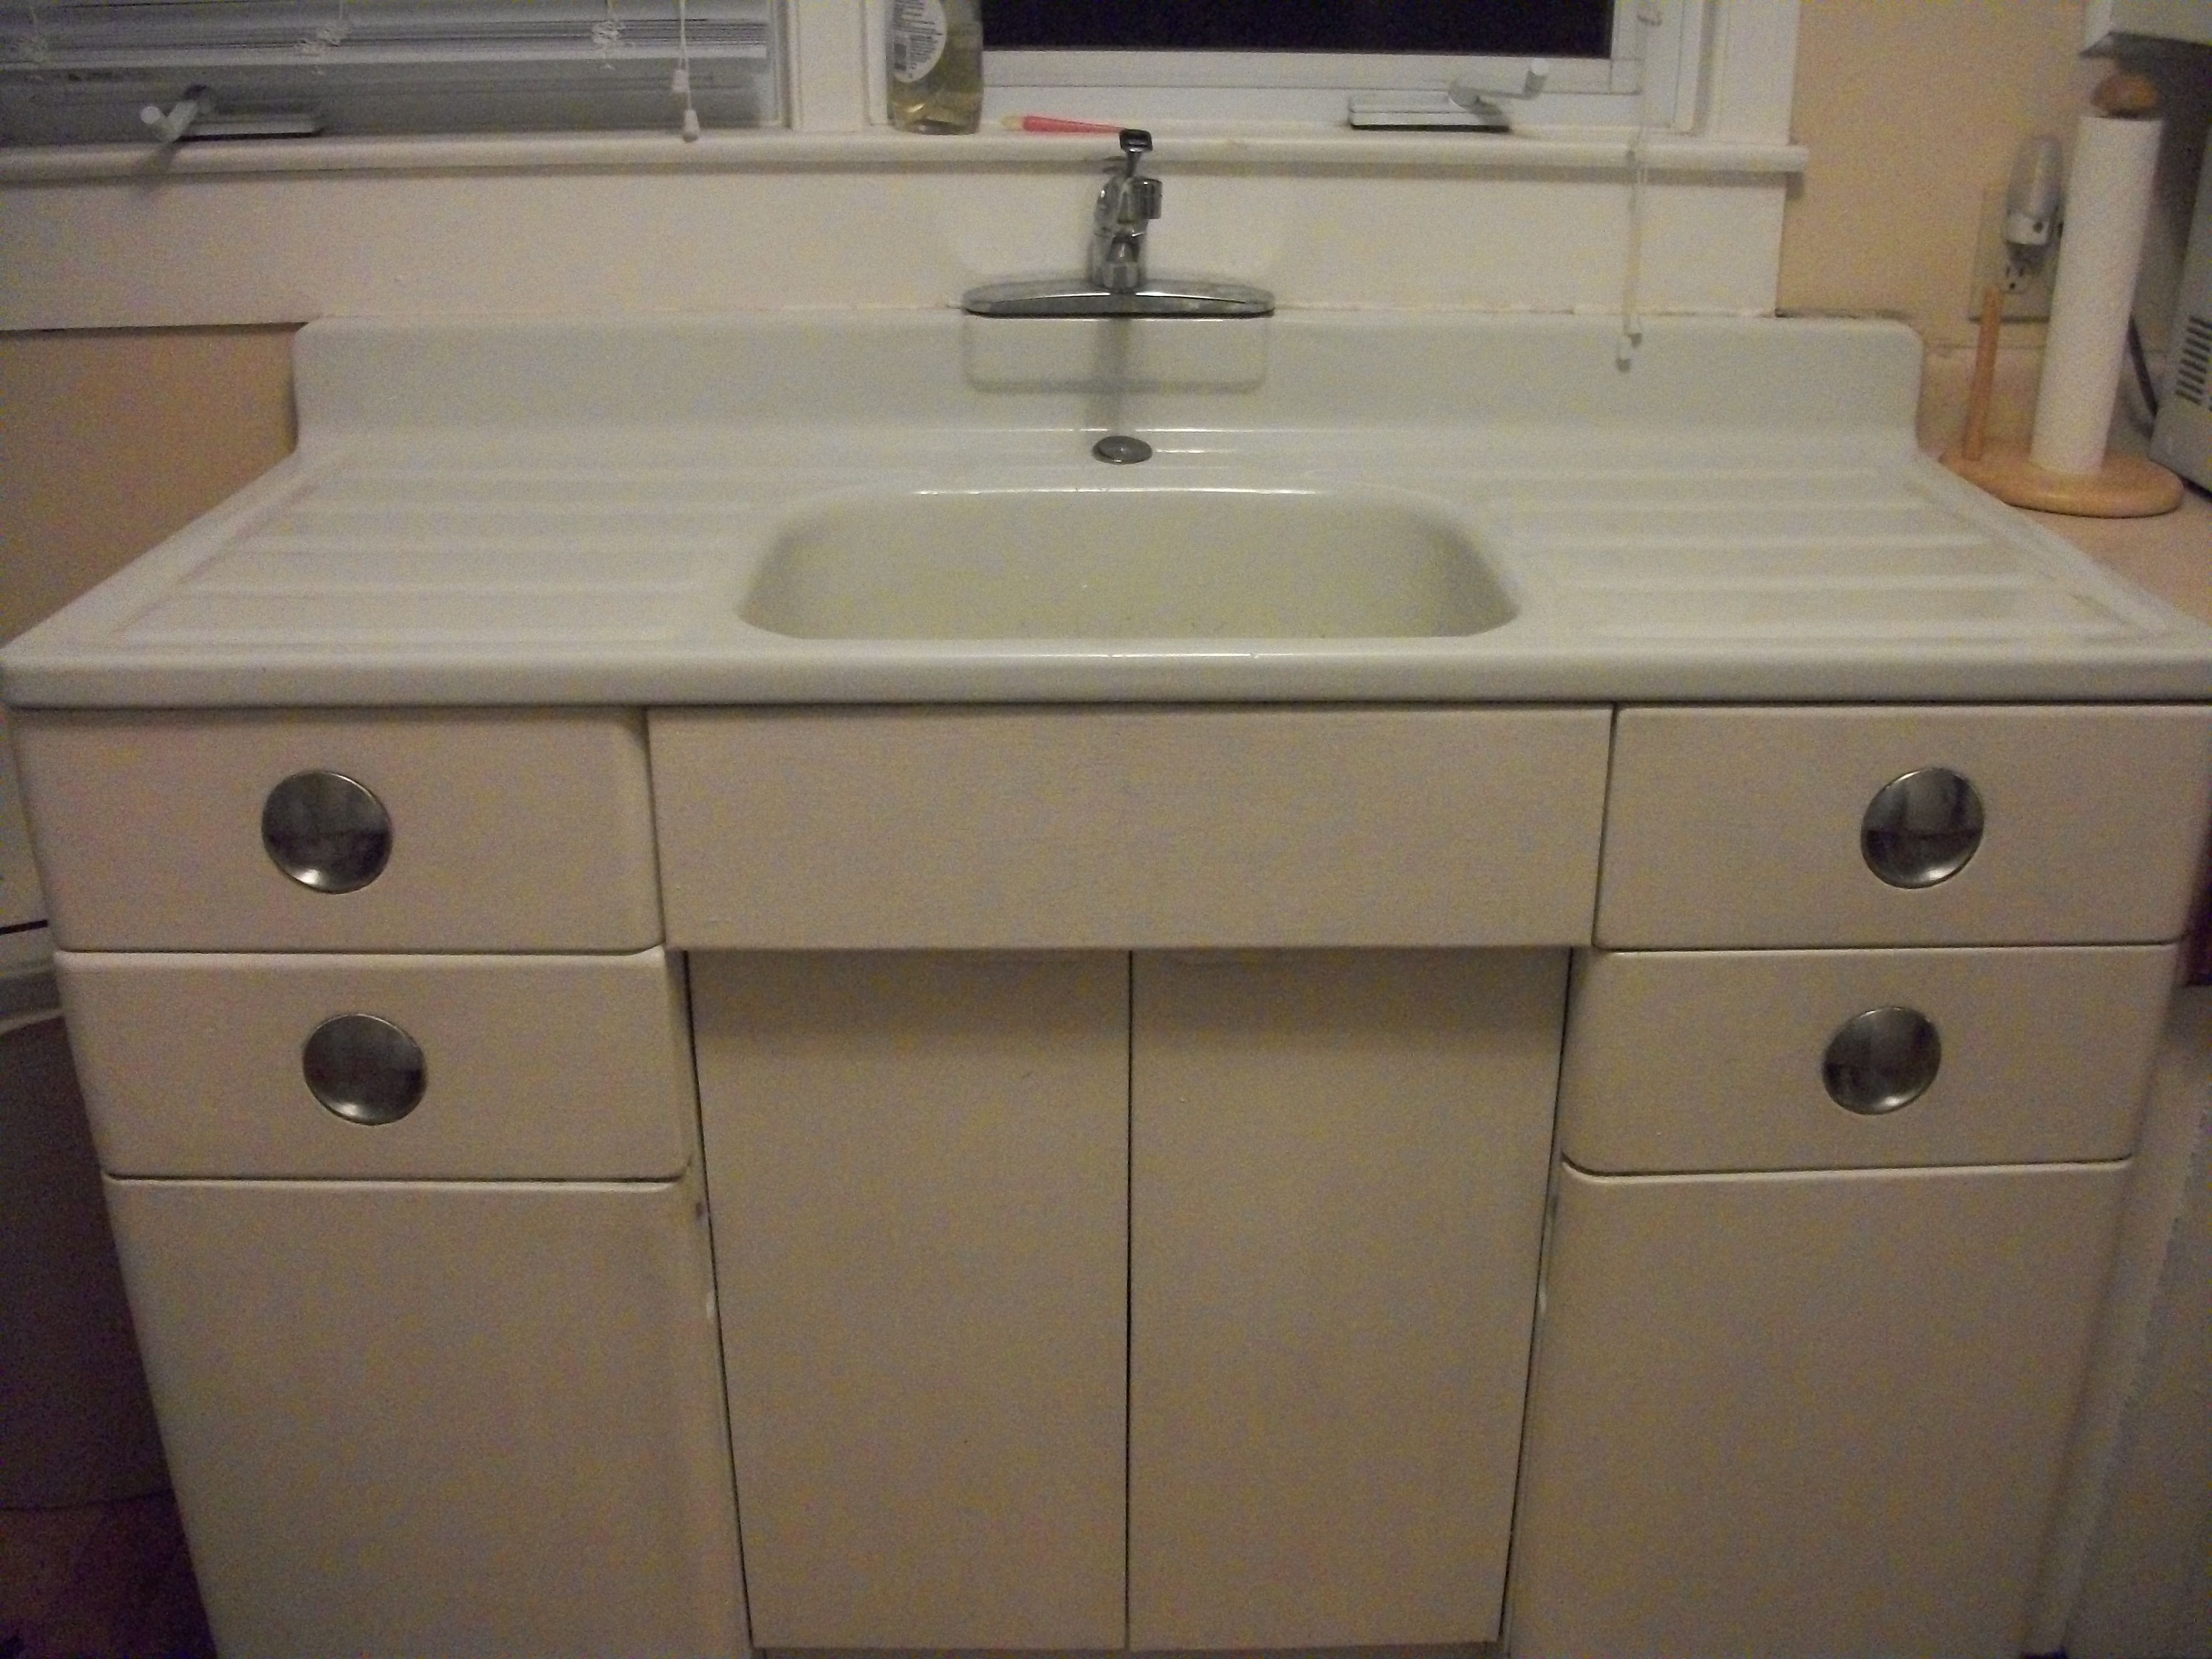 sears kitchen remodel Metal Kitchen Cabinet and Porcelain Sink For Sale Antiques com s Sears Roebuck